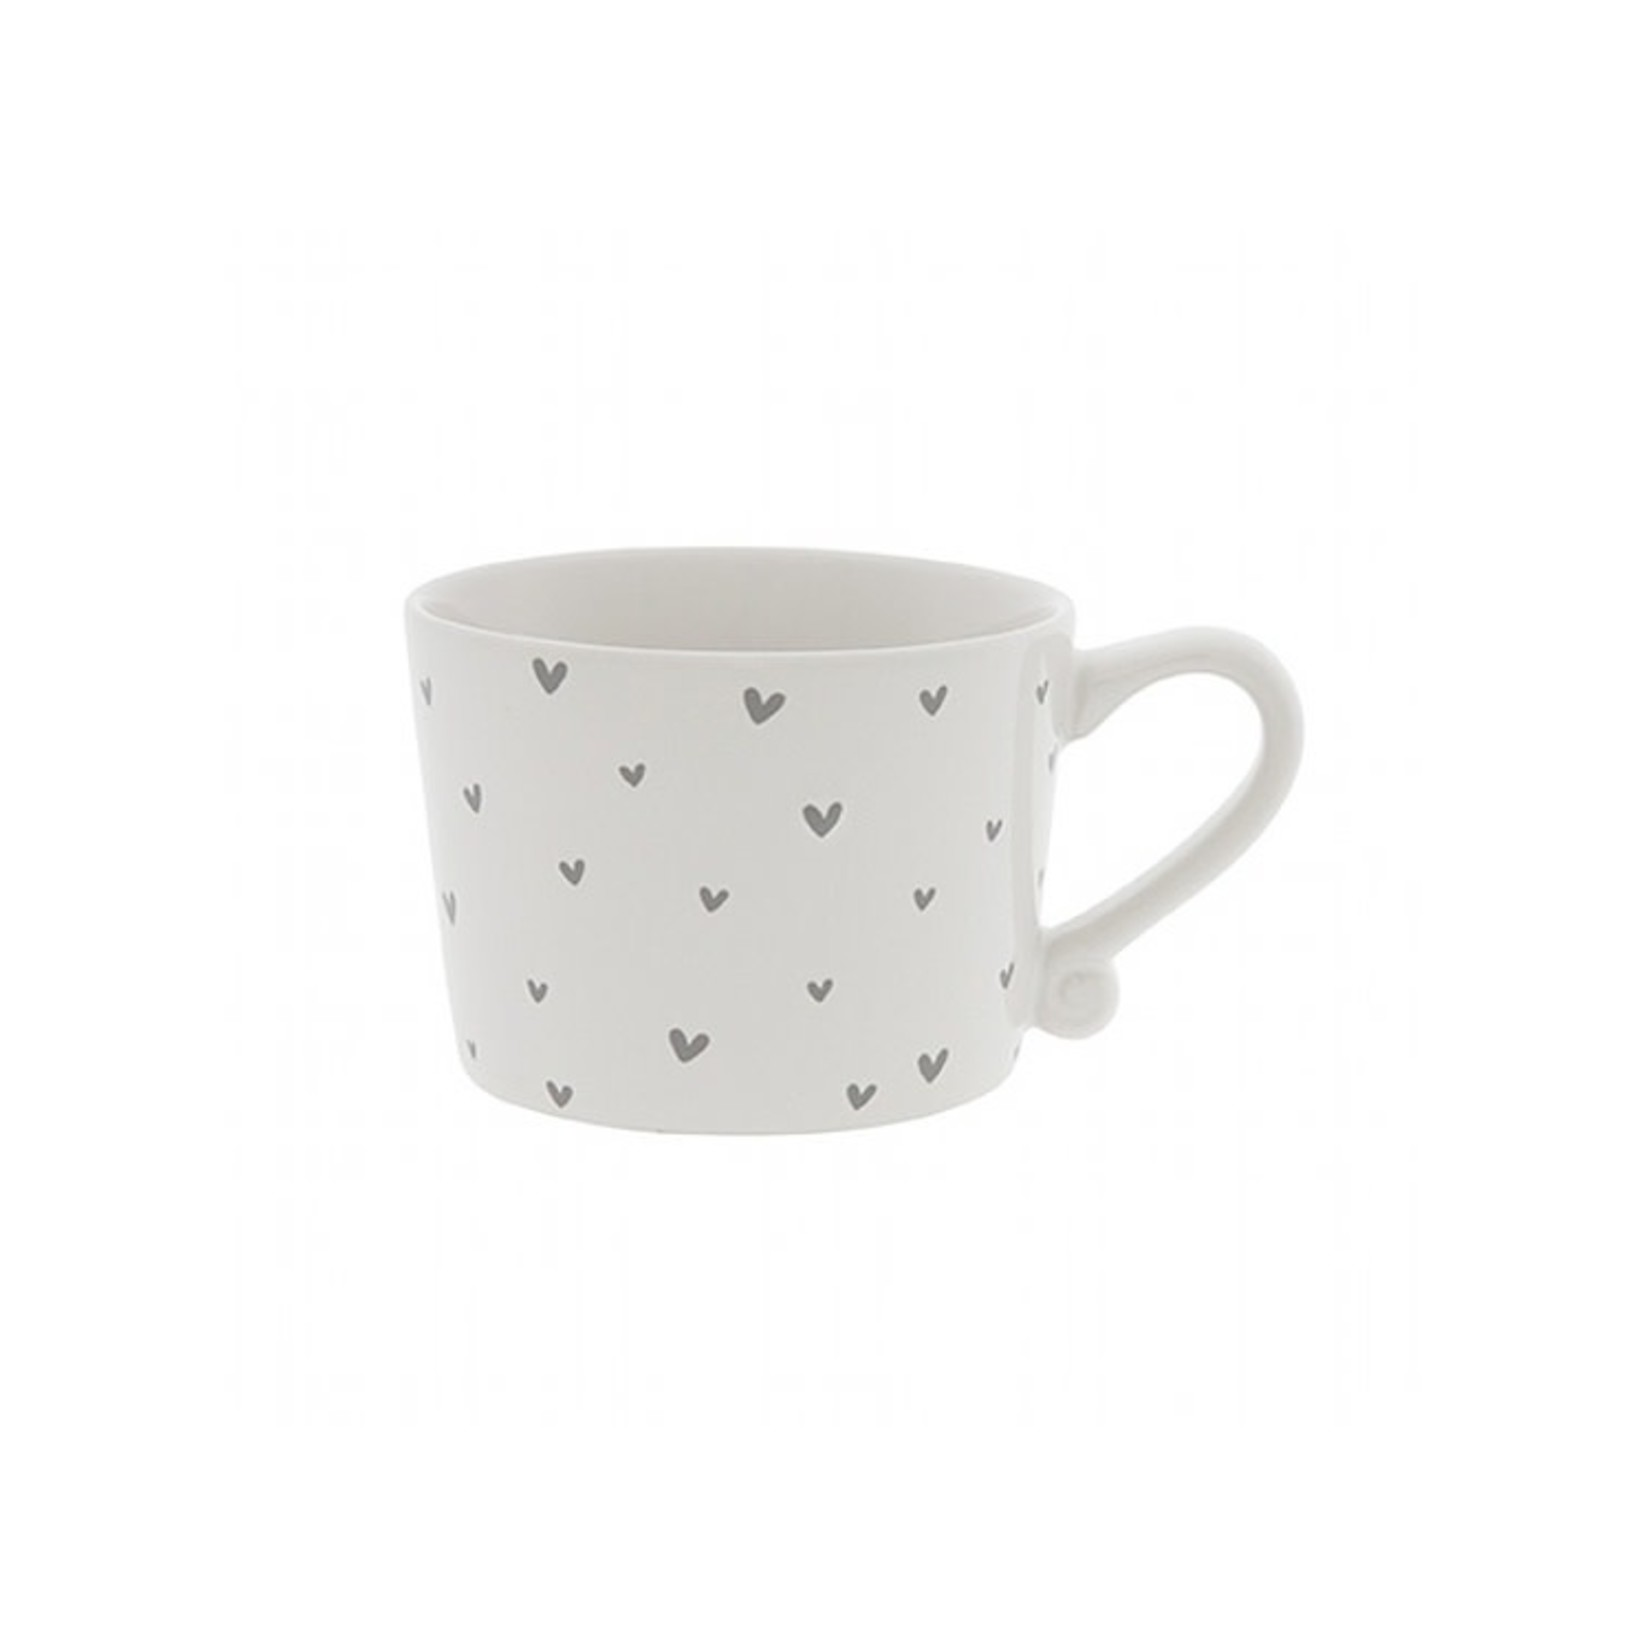 Bastion Collections Cup small White Hearts in Watercolor Grey